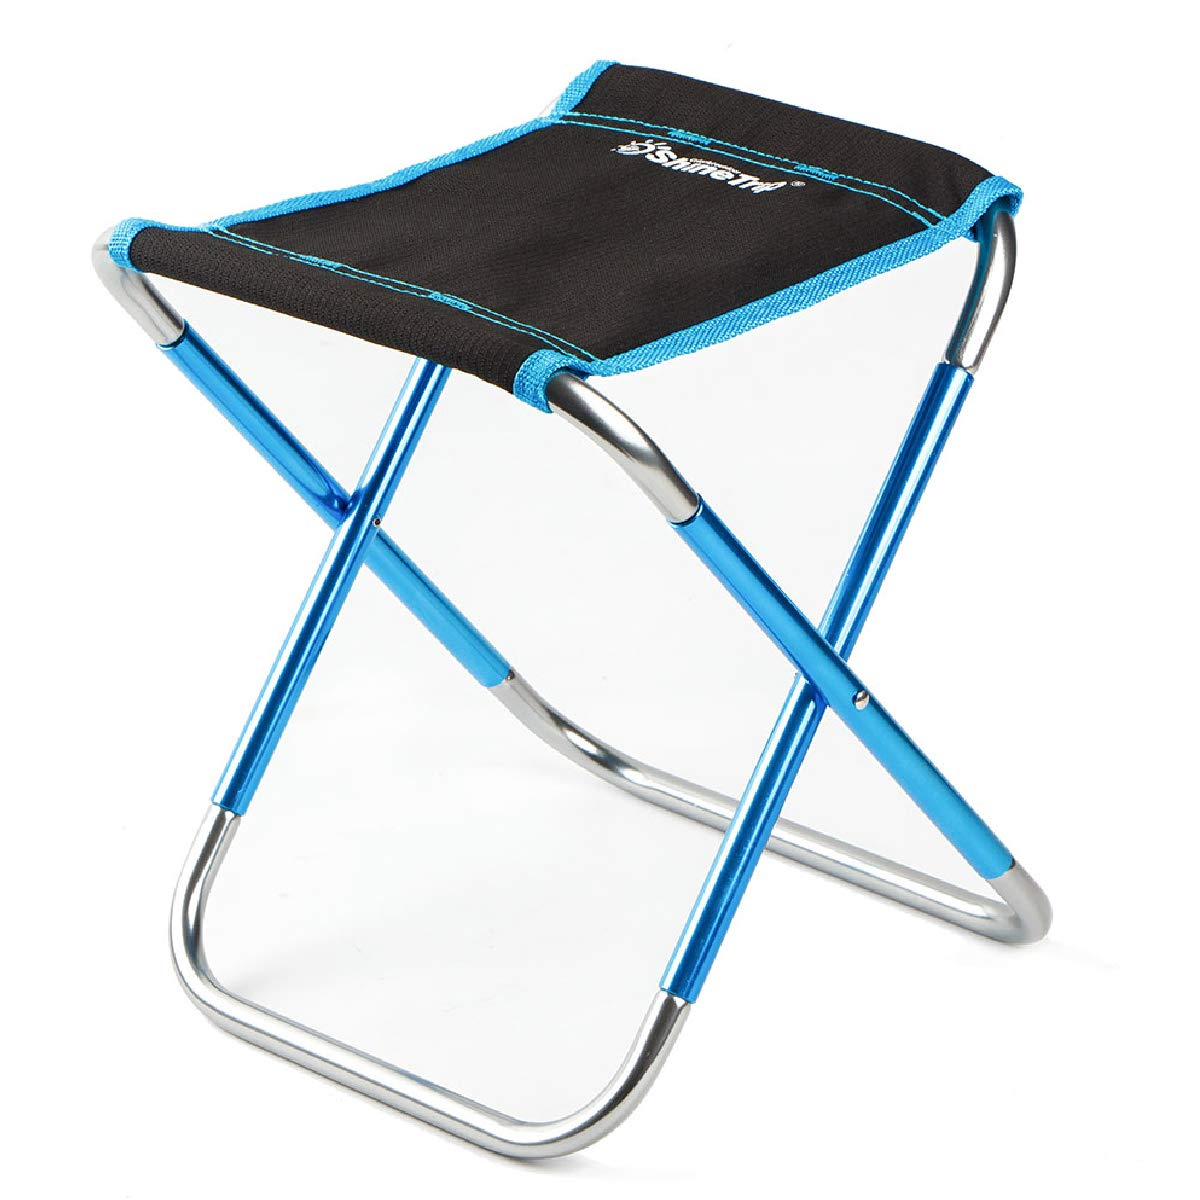 Adults Kids Camping Chair Portable Stool Ultralight Compact Folding Backpack Chair Carry Bag Lightweight Folding Chair for The Outdoors Activities Camping Fishing Hiking